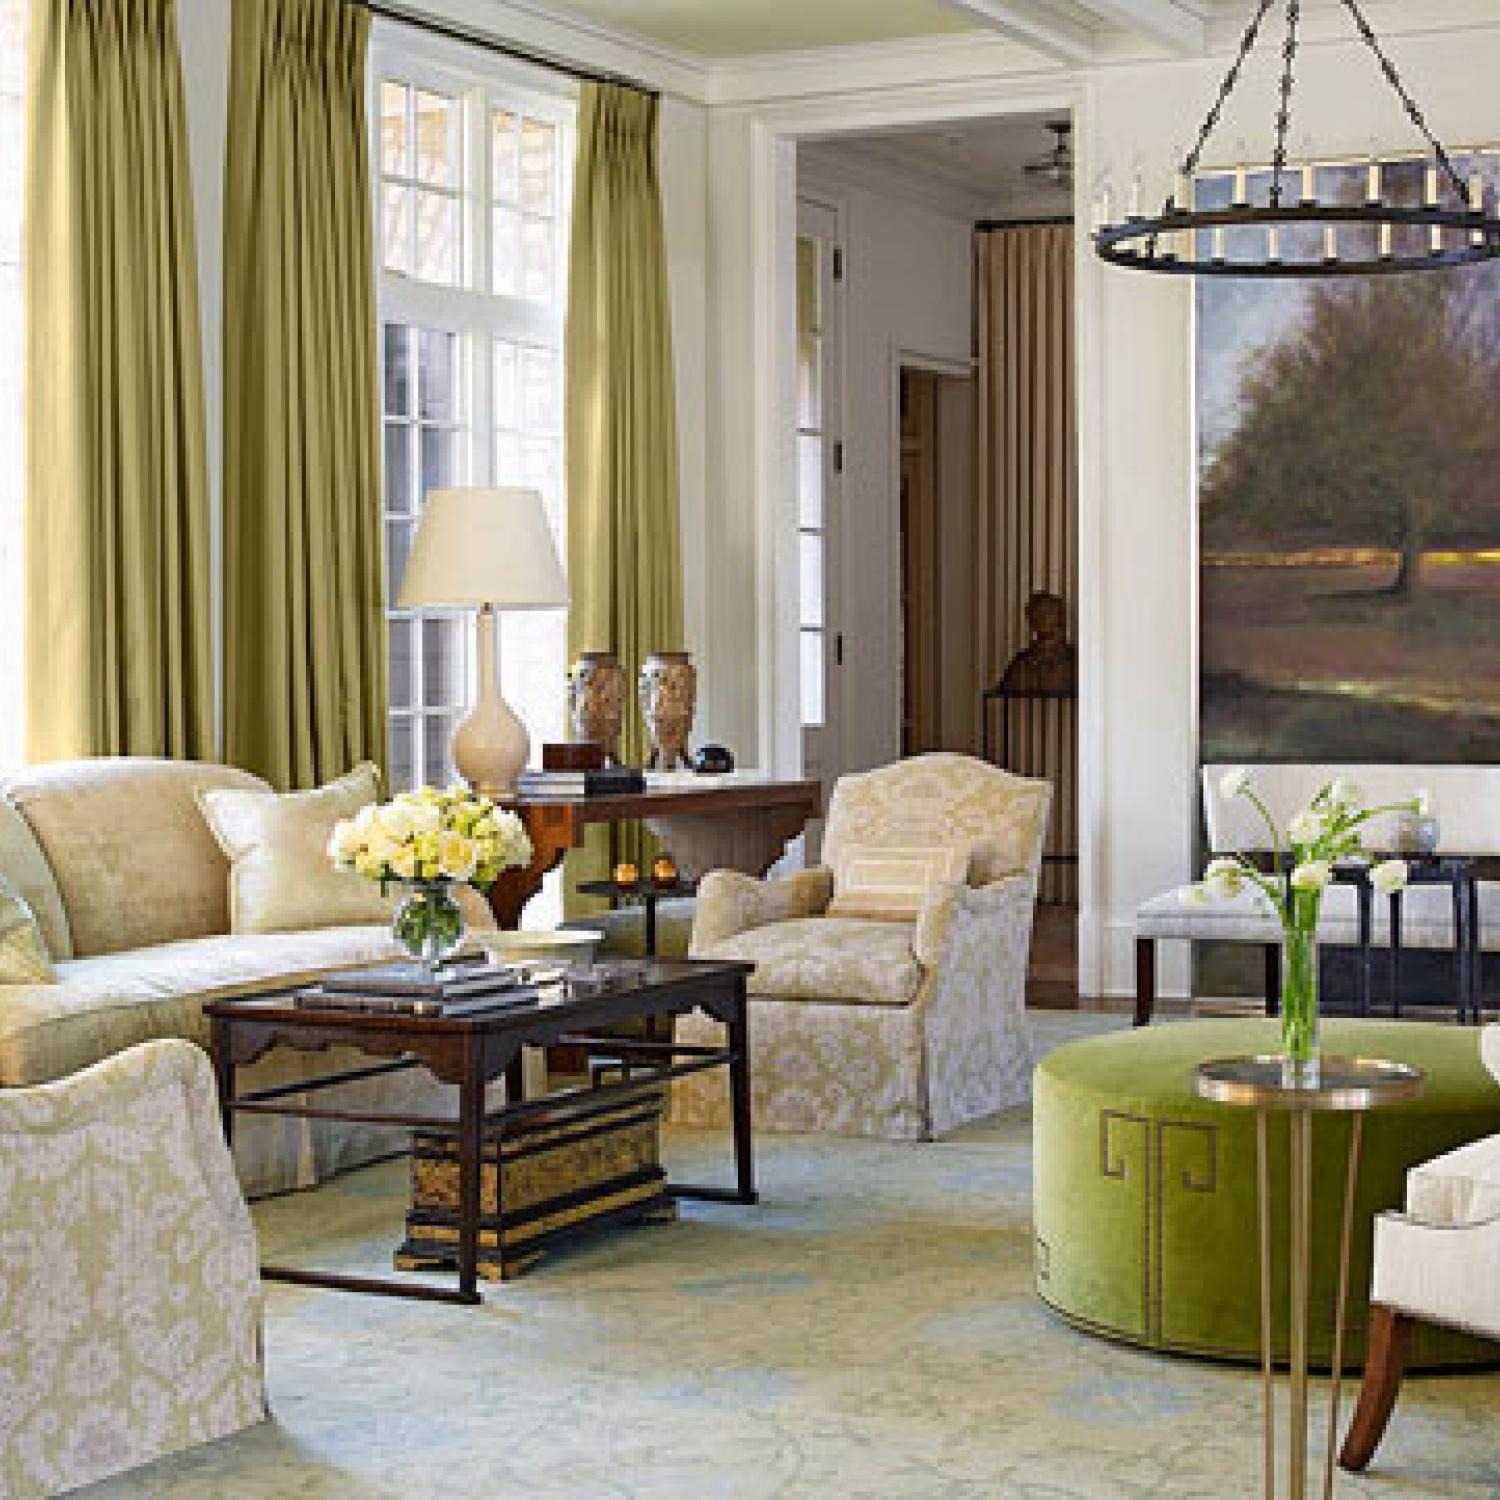 Home With Traditional Southern Design And Hospitality